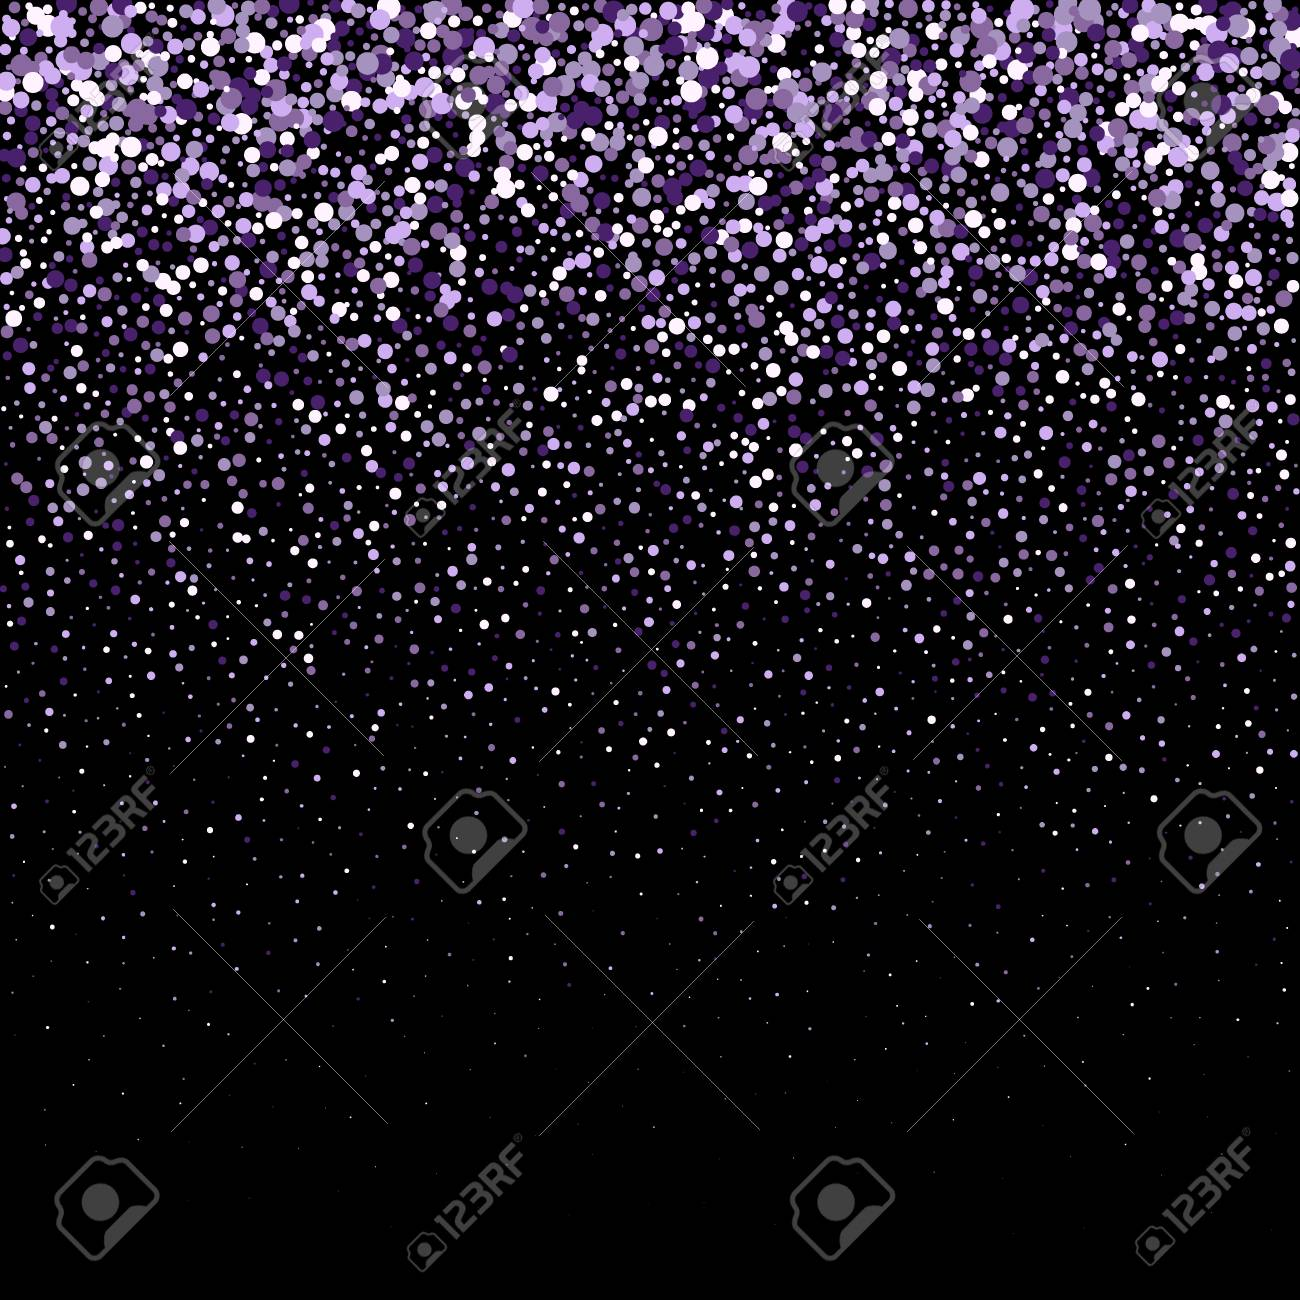 new year and birthday cards festive background with falling glitter confettisparkling glitter border vector frame great for